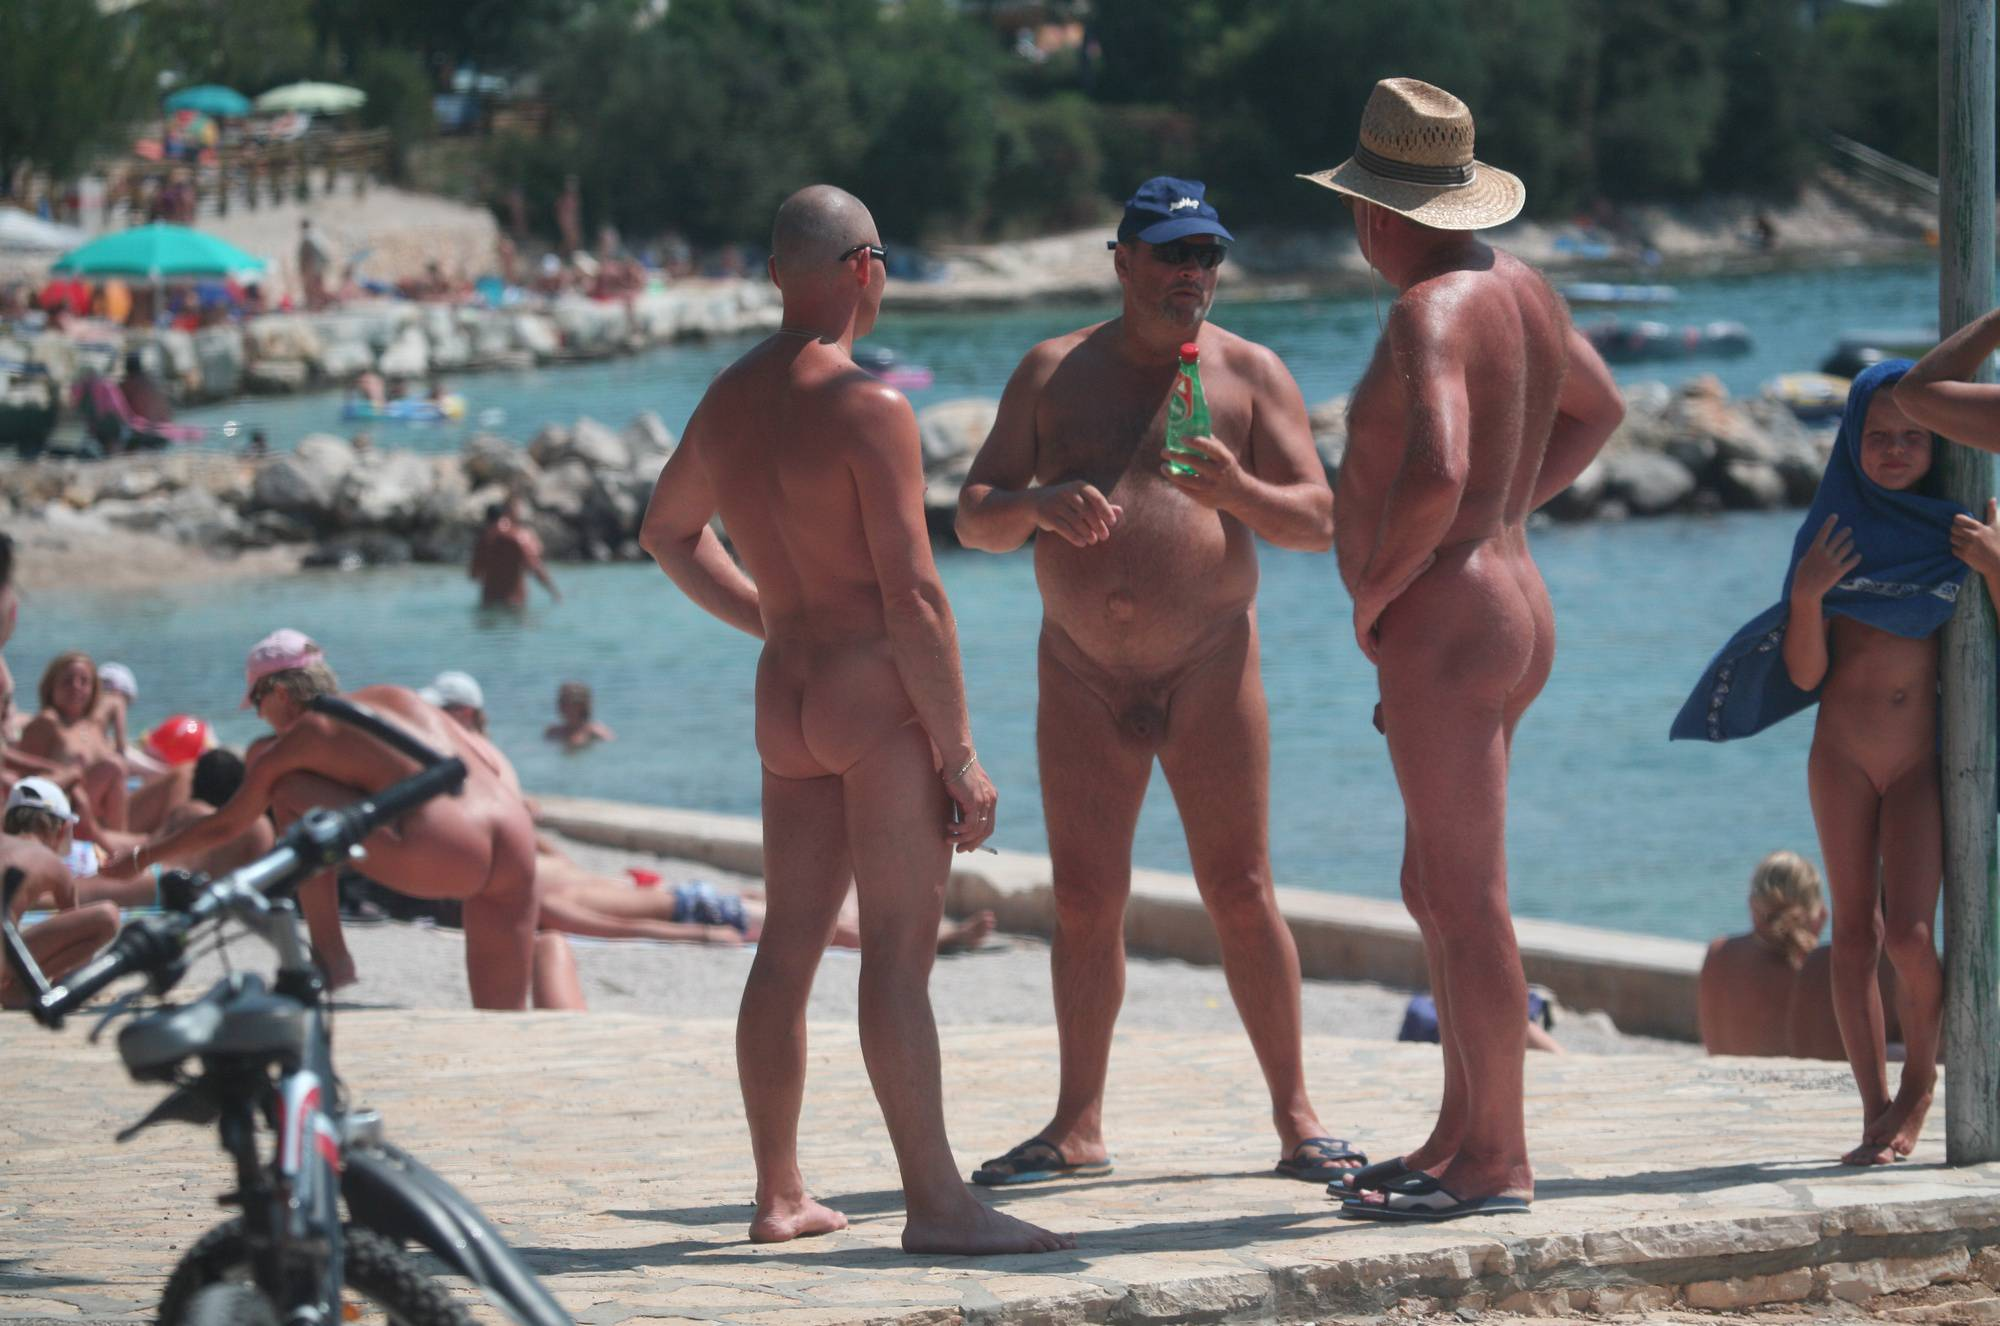 Nudist Pictures Avilia FKK Naturist Beach - 2